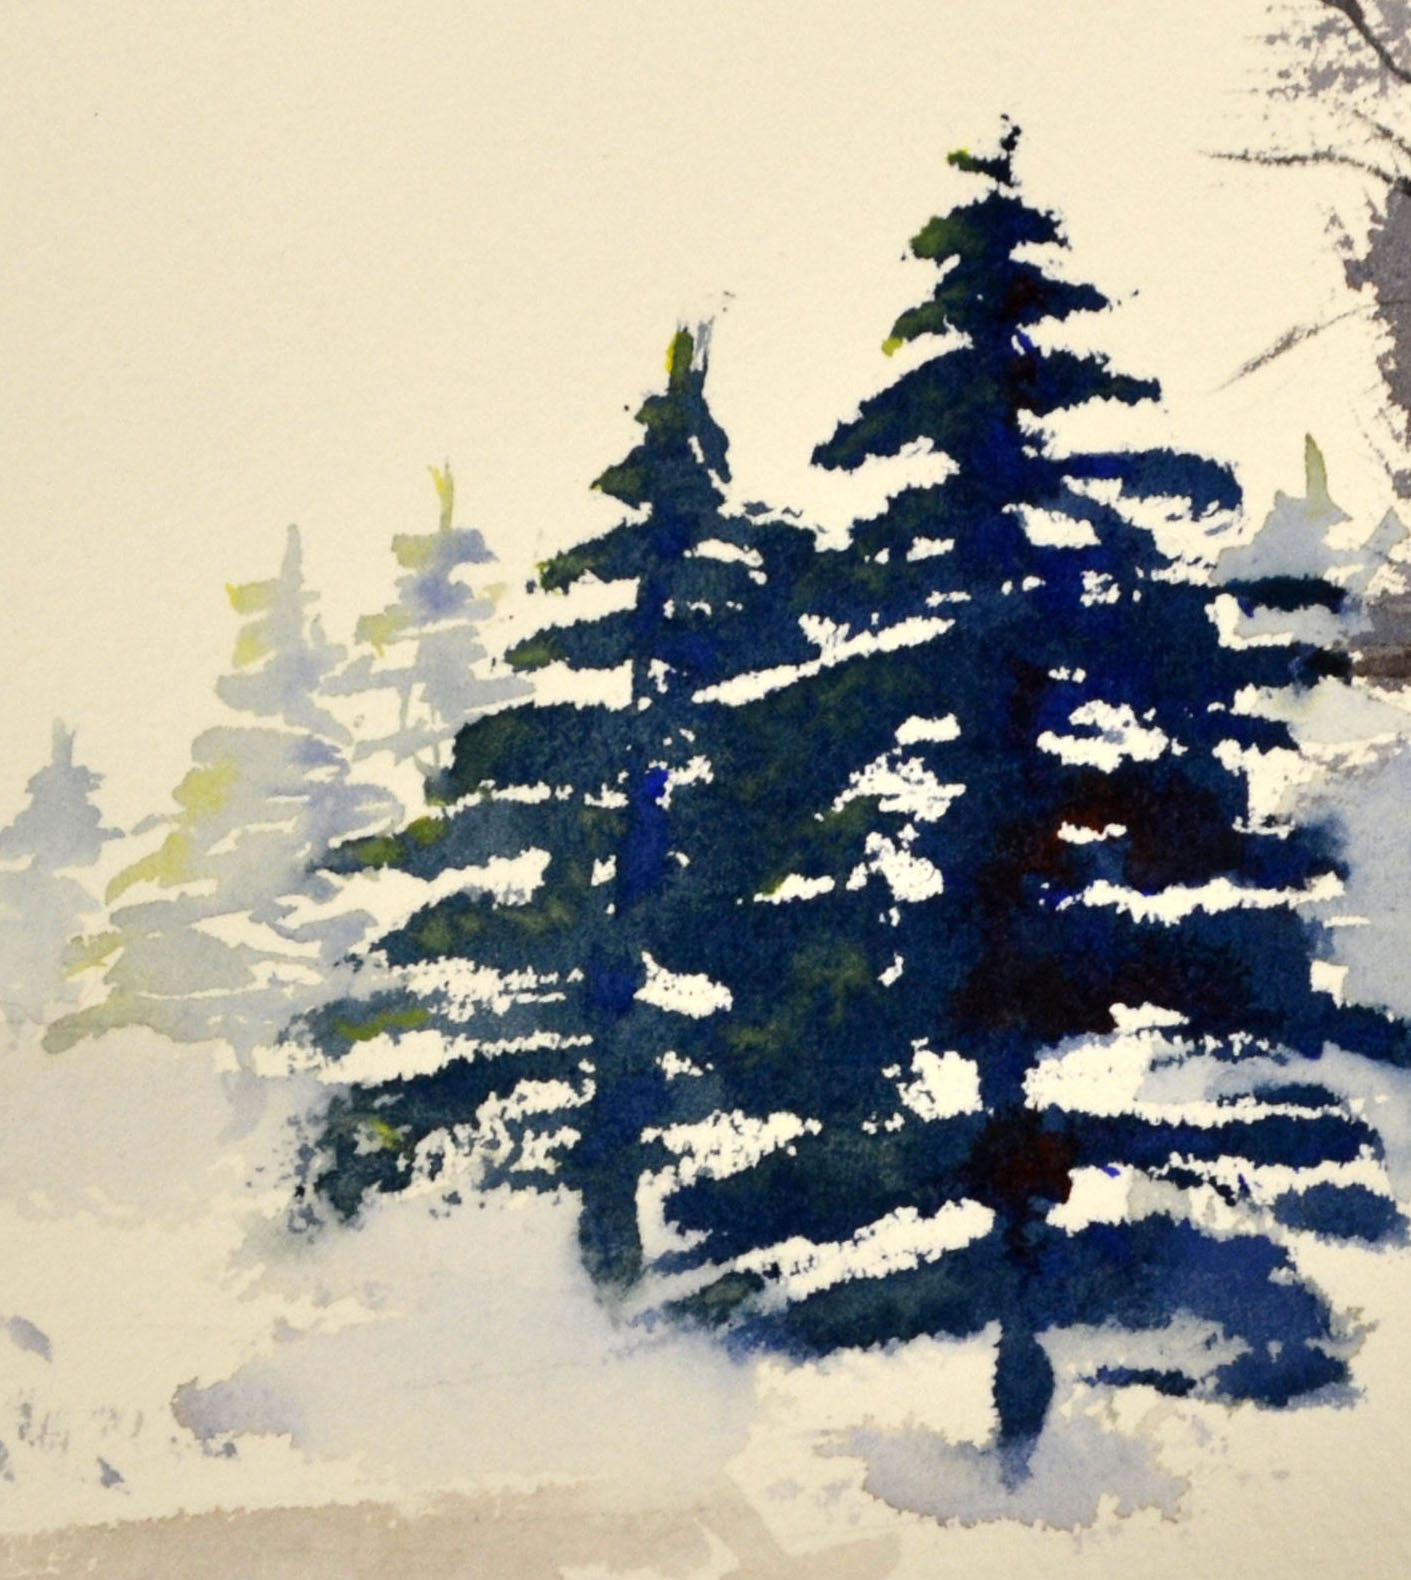 Drawn fir tree We a the Christmas painted